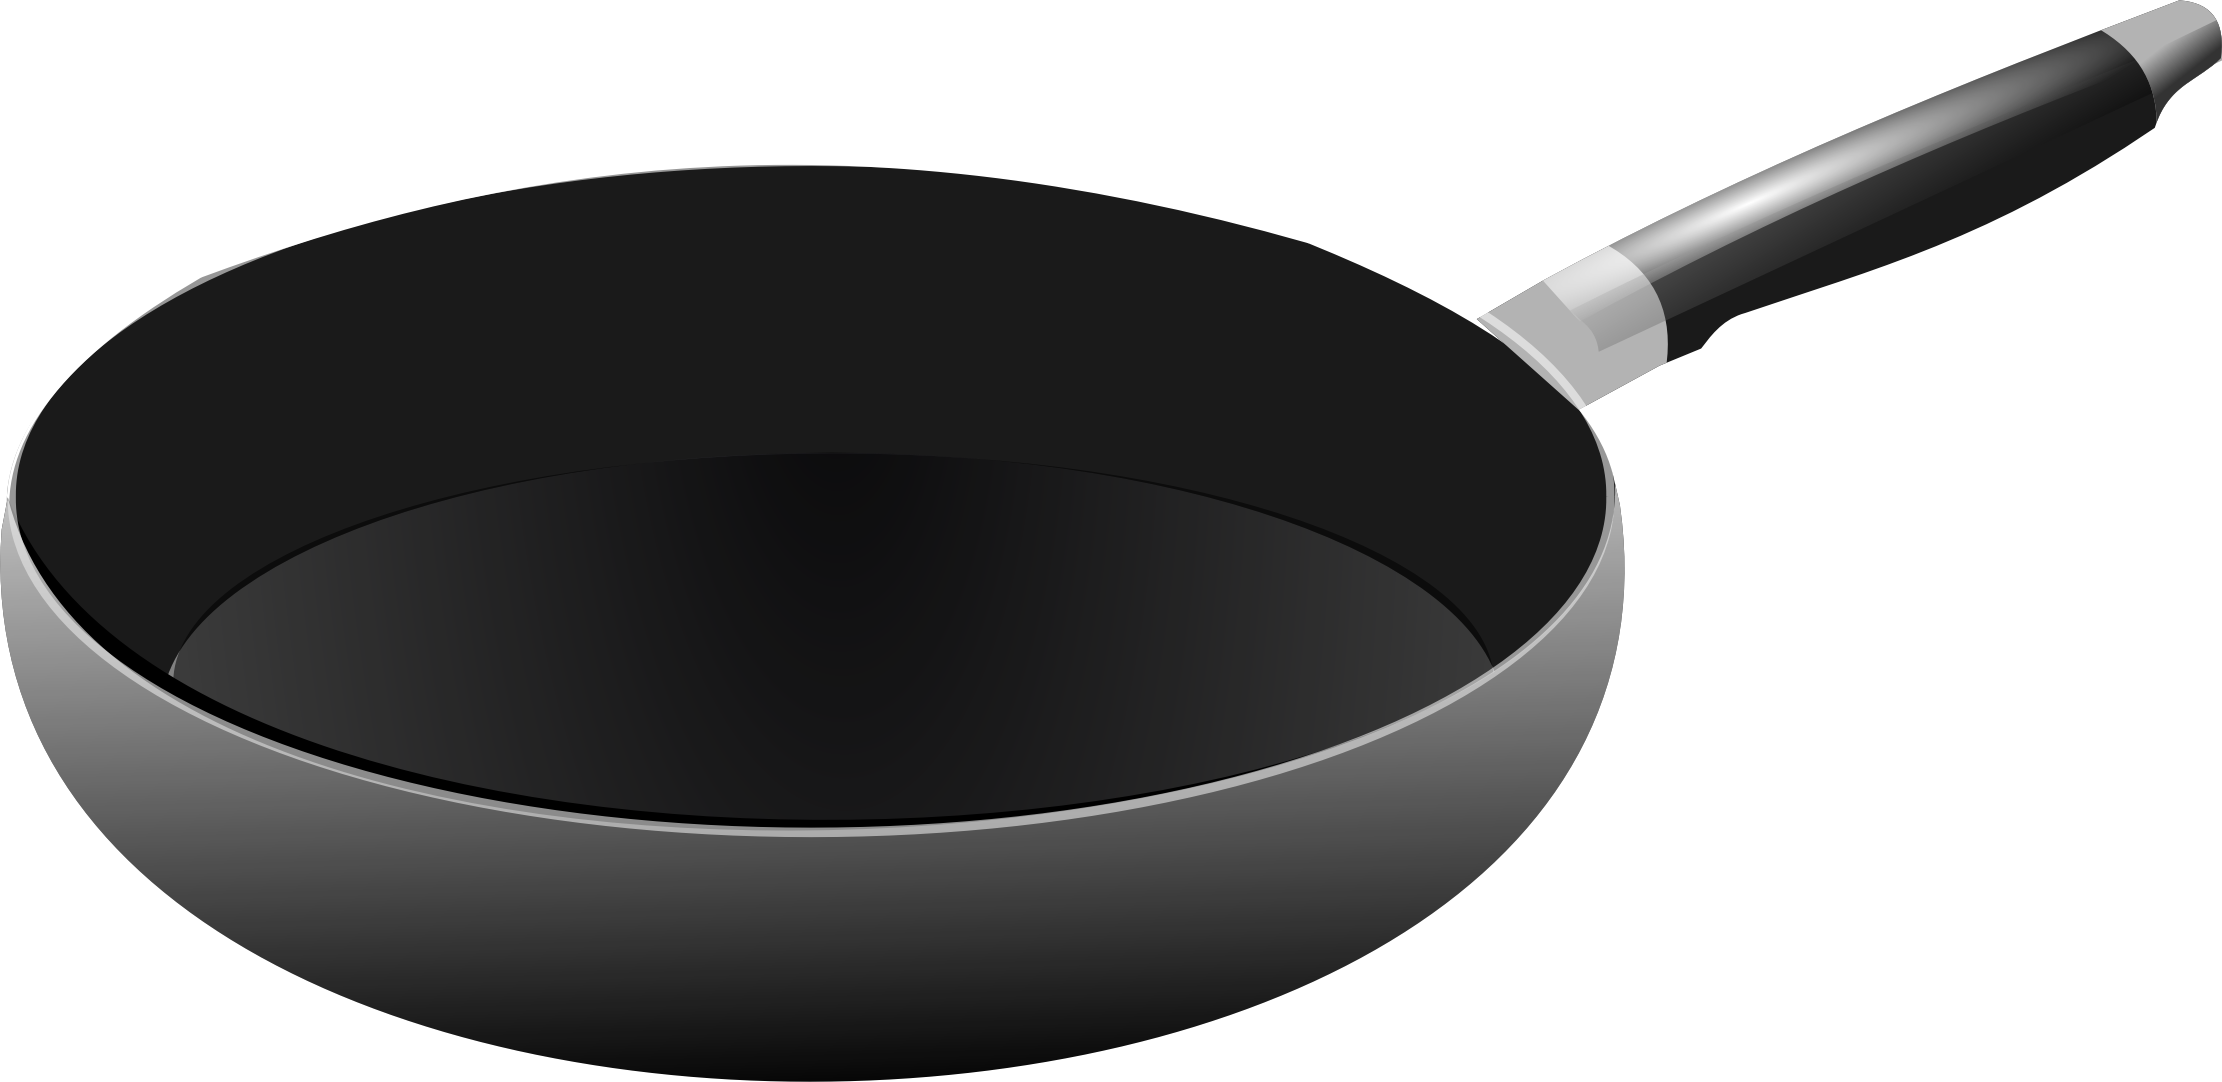 Download Cooking Pan PNG images transparent gallery. Advertisement - Cooking Pan PNG